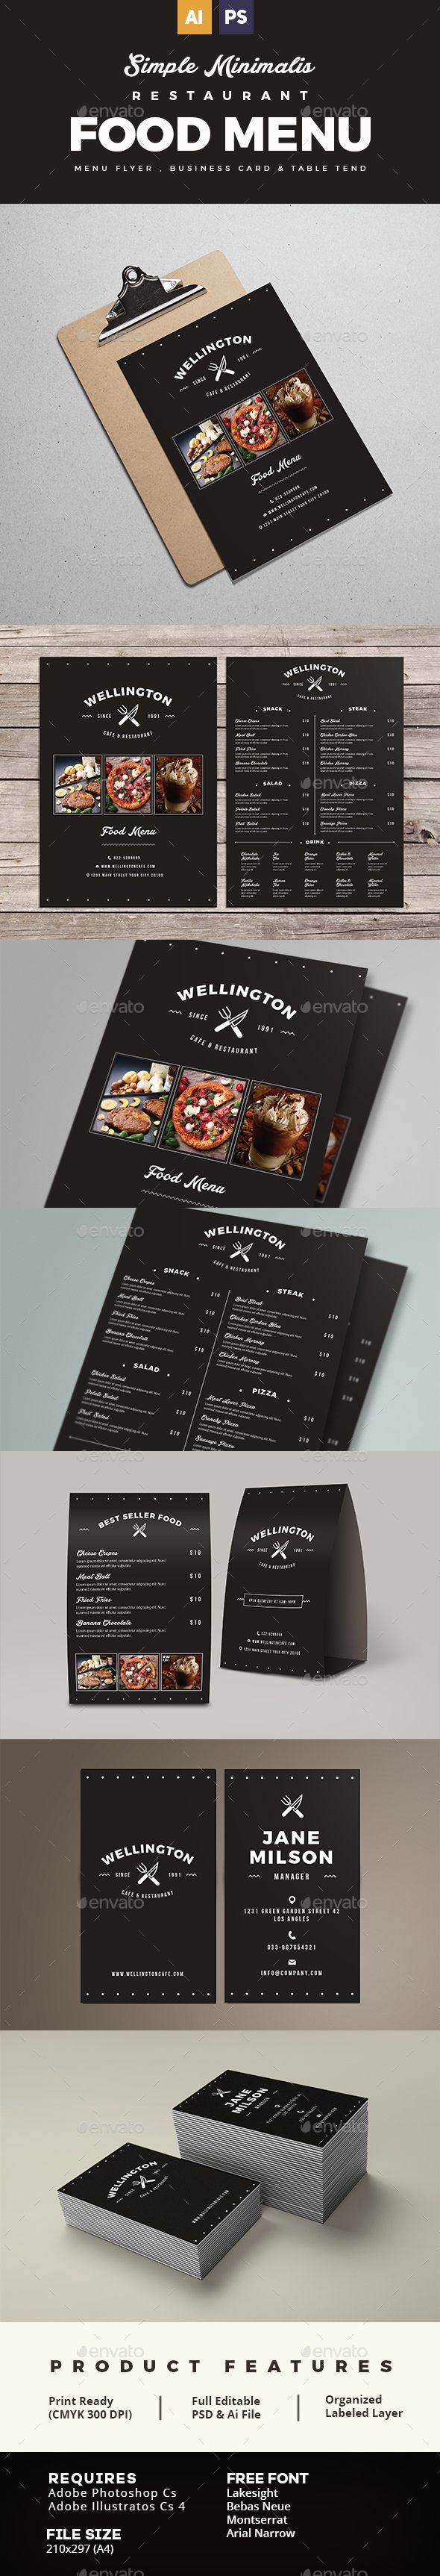 1000 Images About Restaurant Ideas On Pinterest Social Media